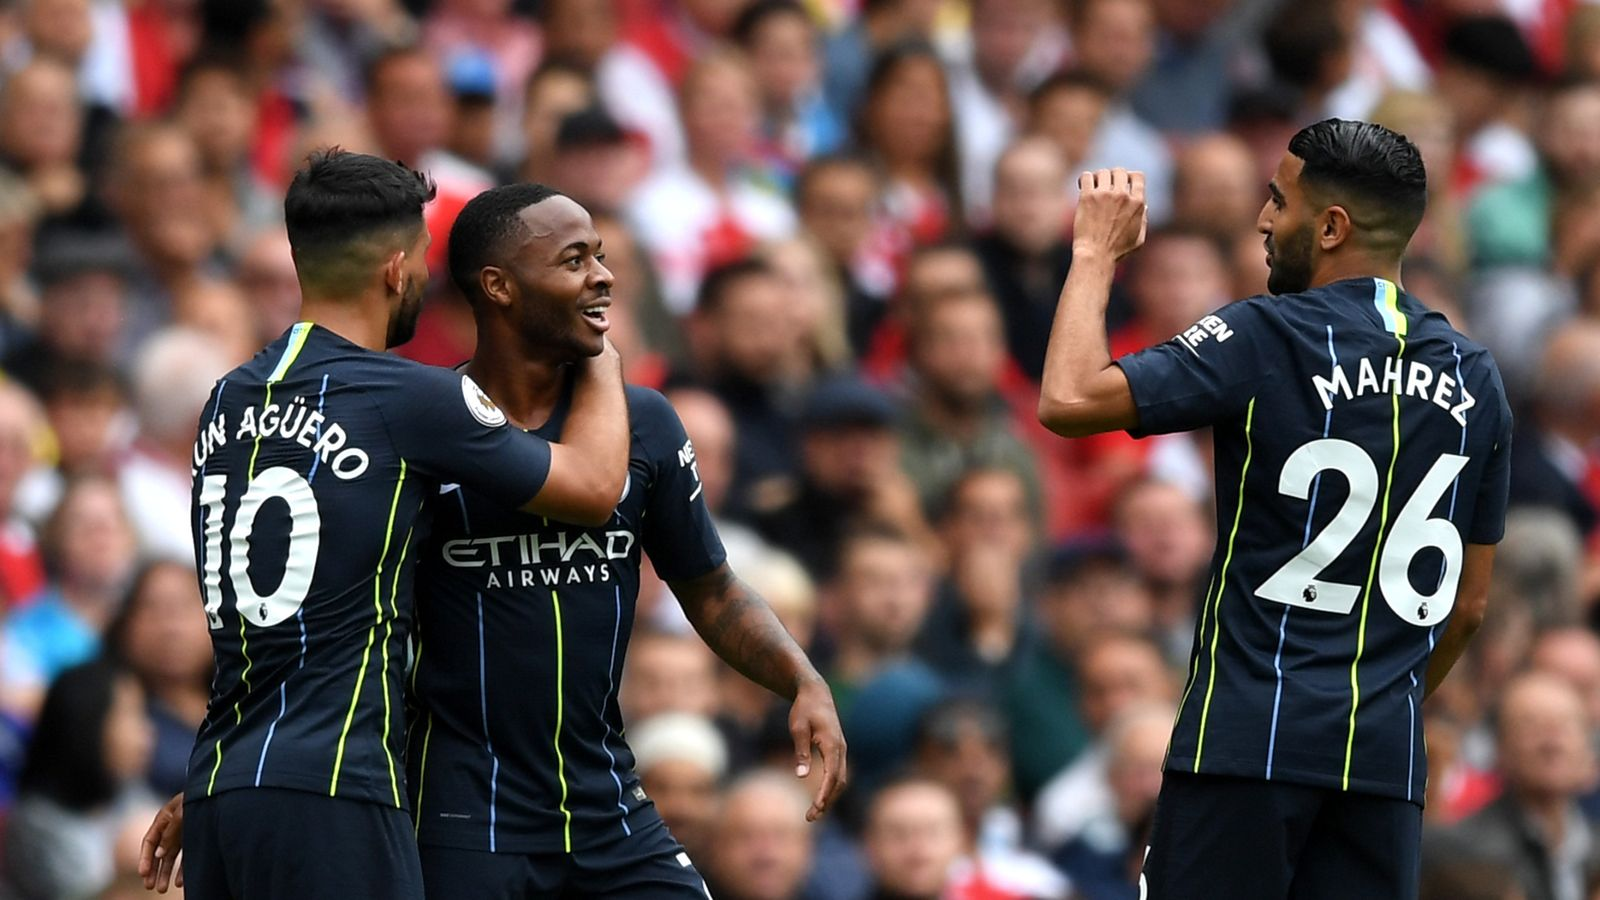 Arsenal 0 - 2 Man City - Match Report & Highlights